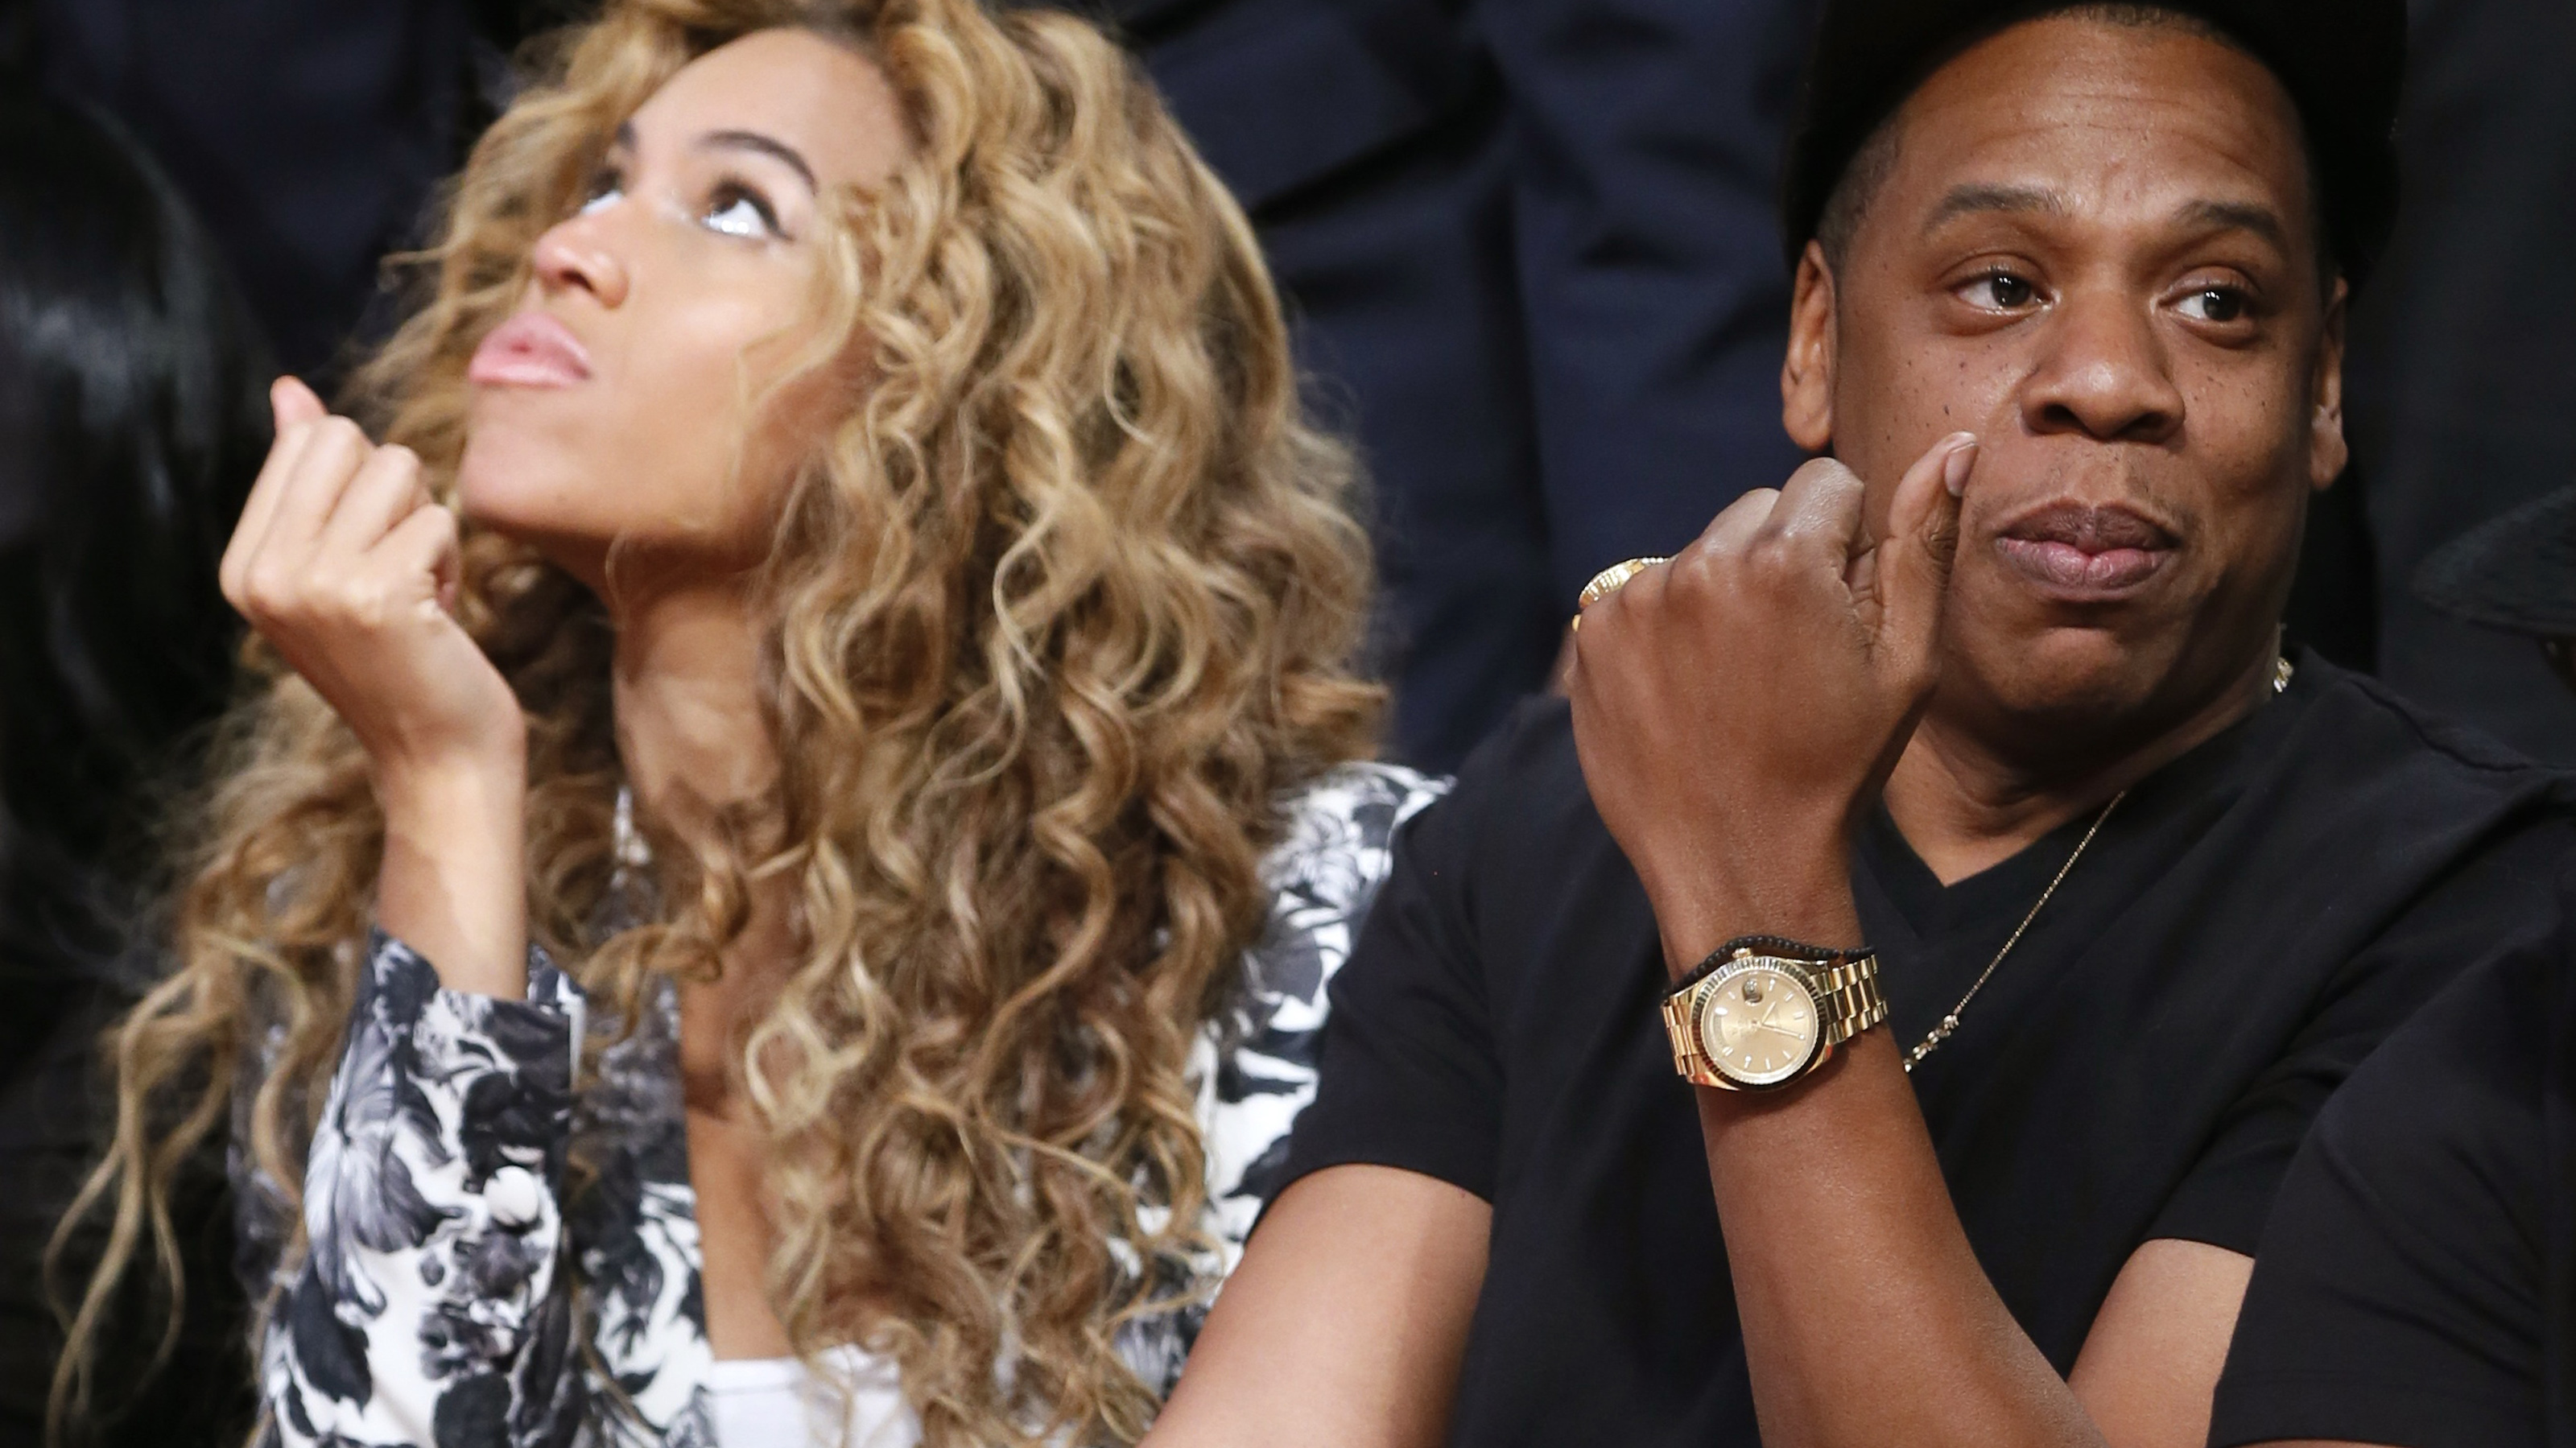 Singer Beyonce and her husband Jay-Z sit courtside before the NBA All-Star basketball game in Houston, Texas, February 17, 2013. REUTERS/Lucy Nicholson (UNITED STATES  - Tags: SPORT BASKETBALL)   - RTR3DXRW